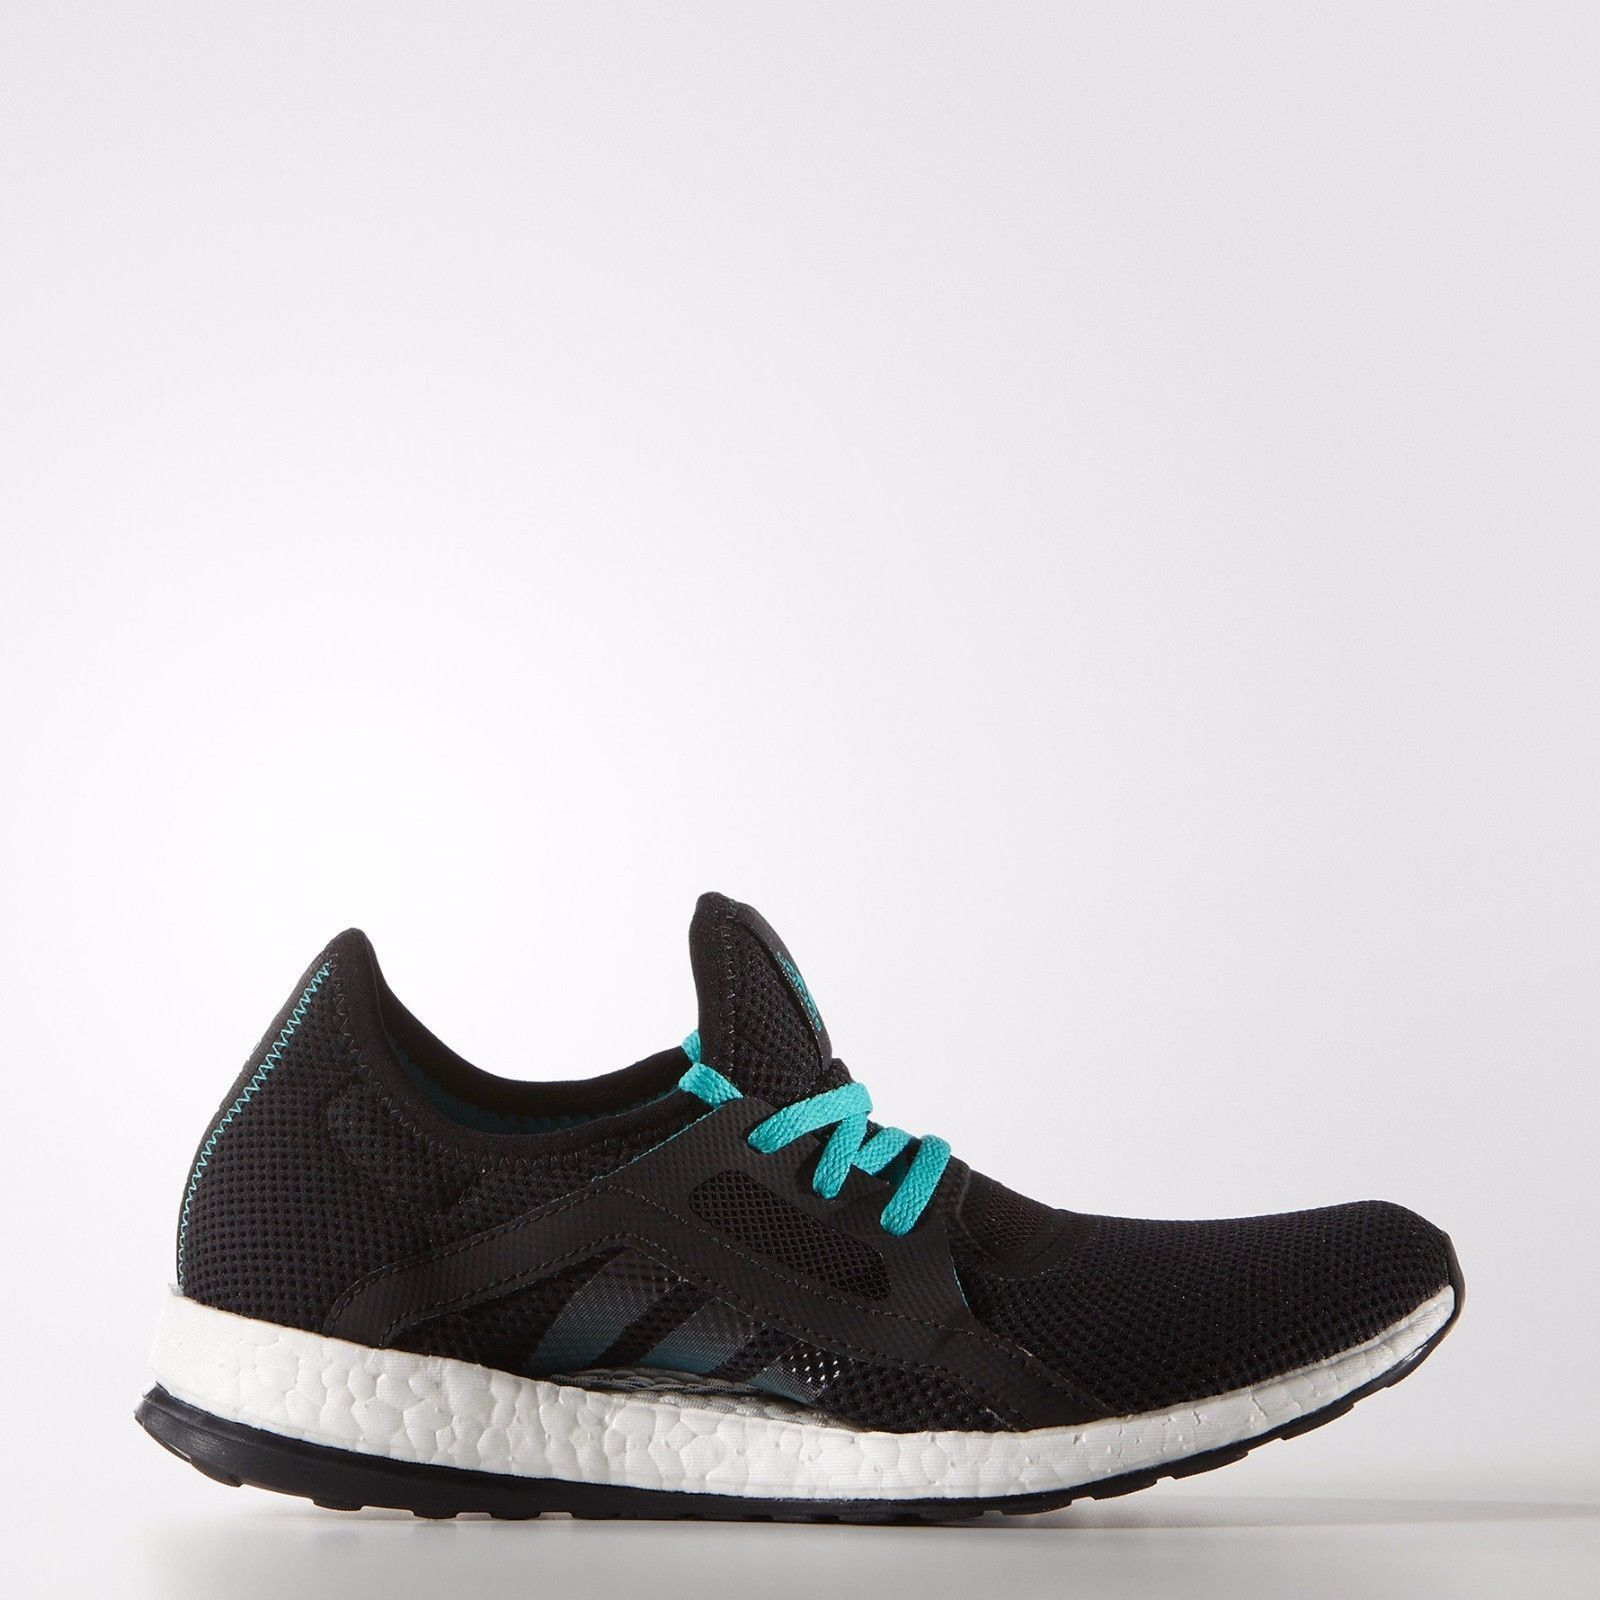 adidas pure boost x size 6